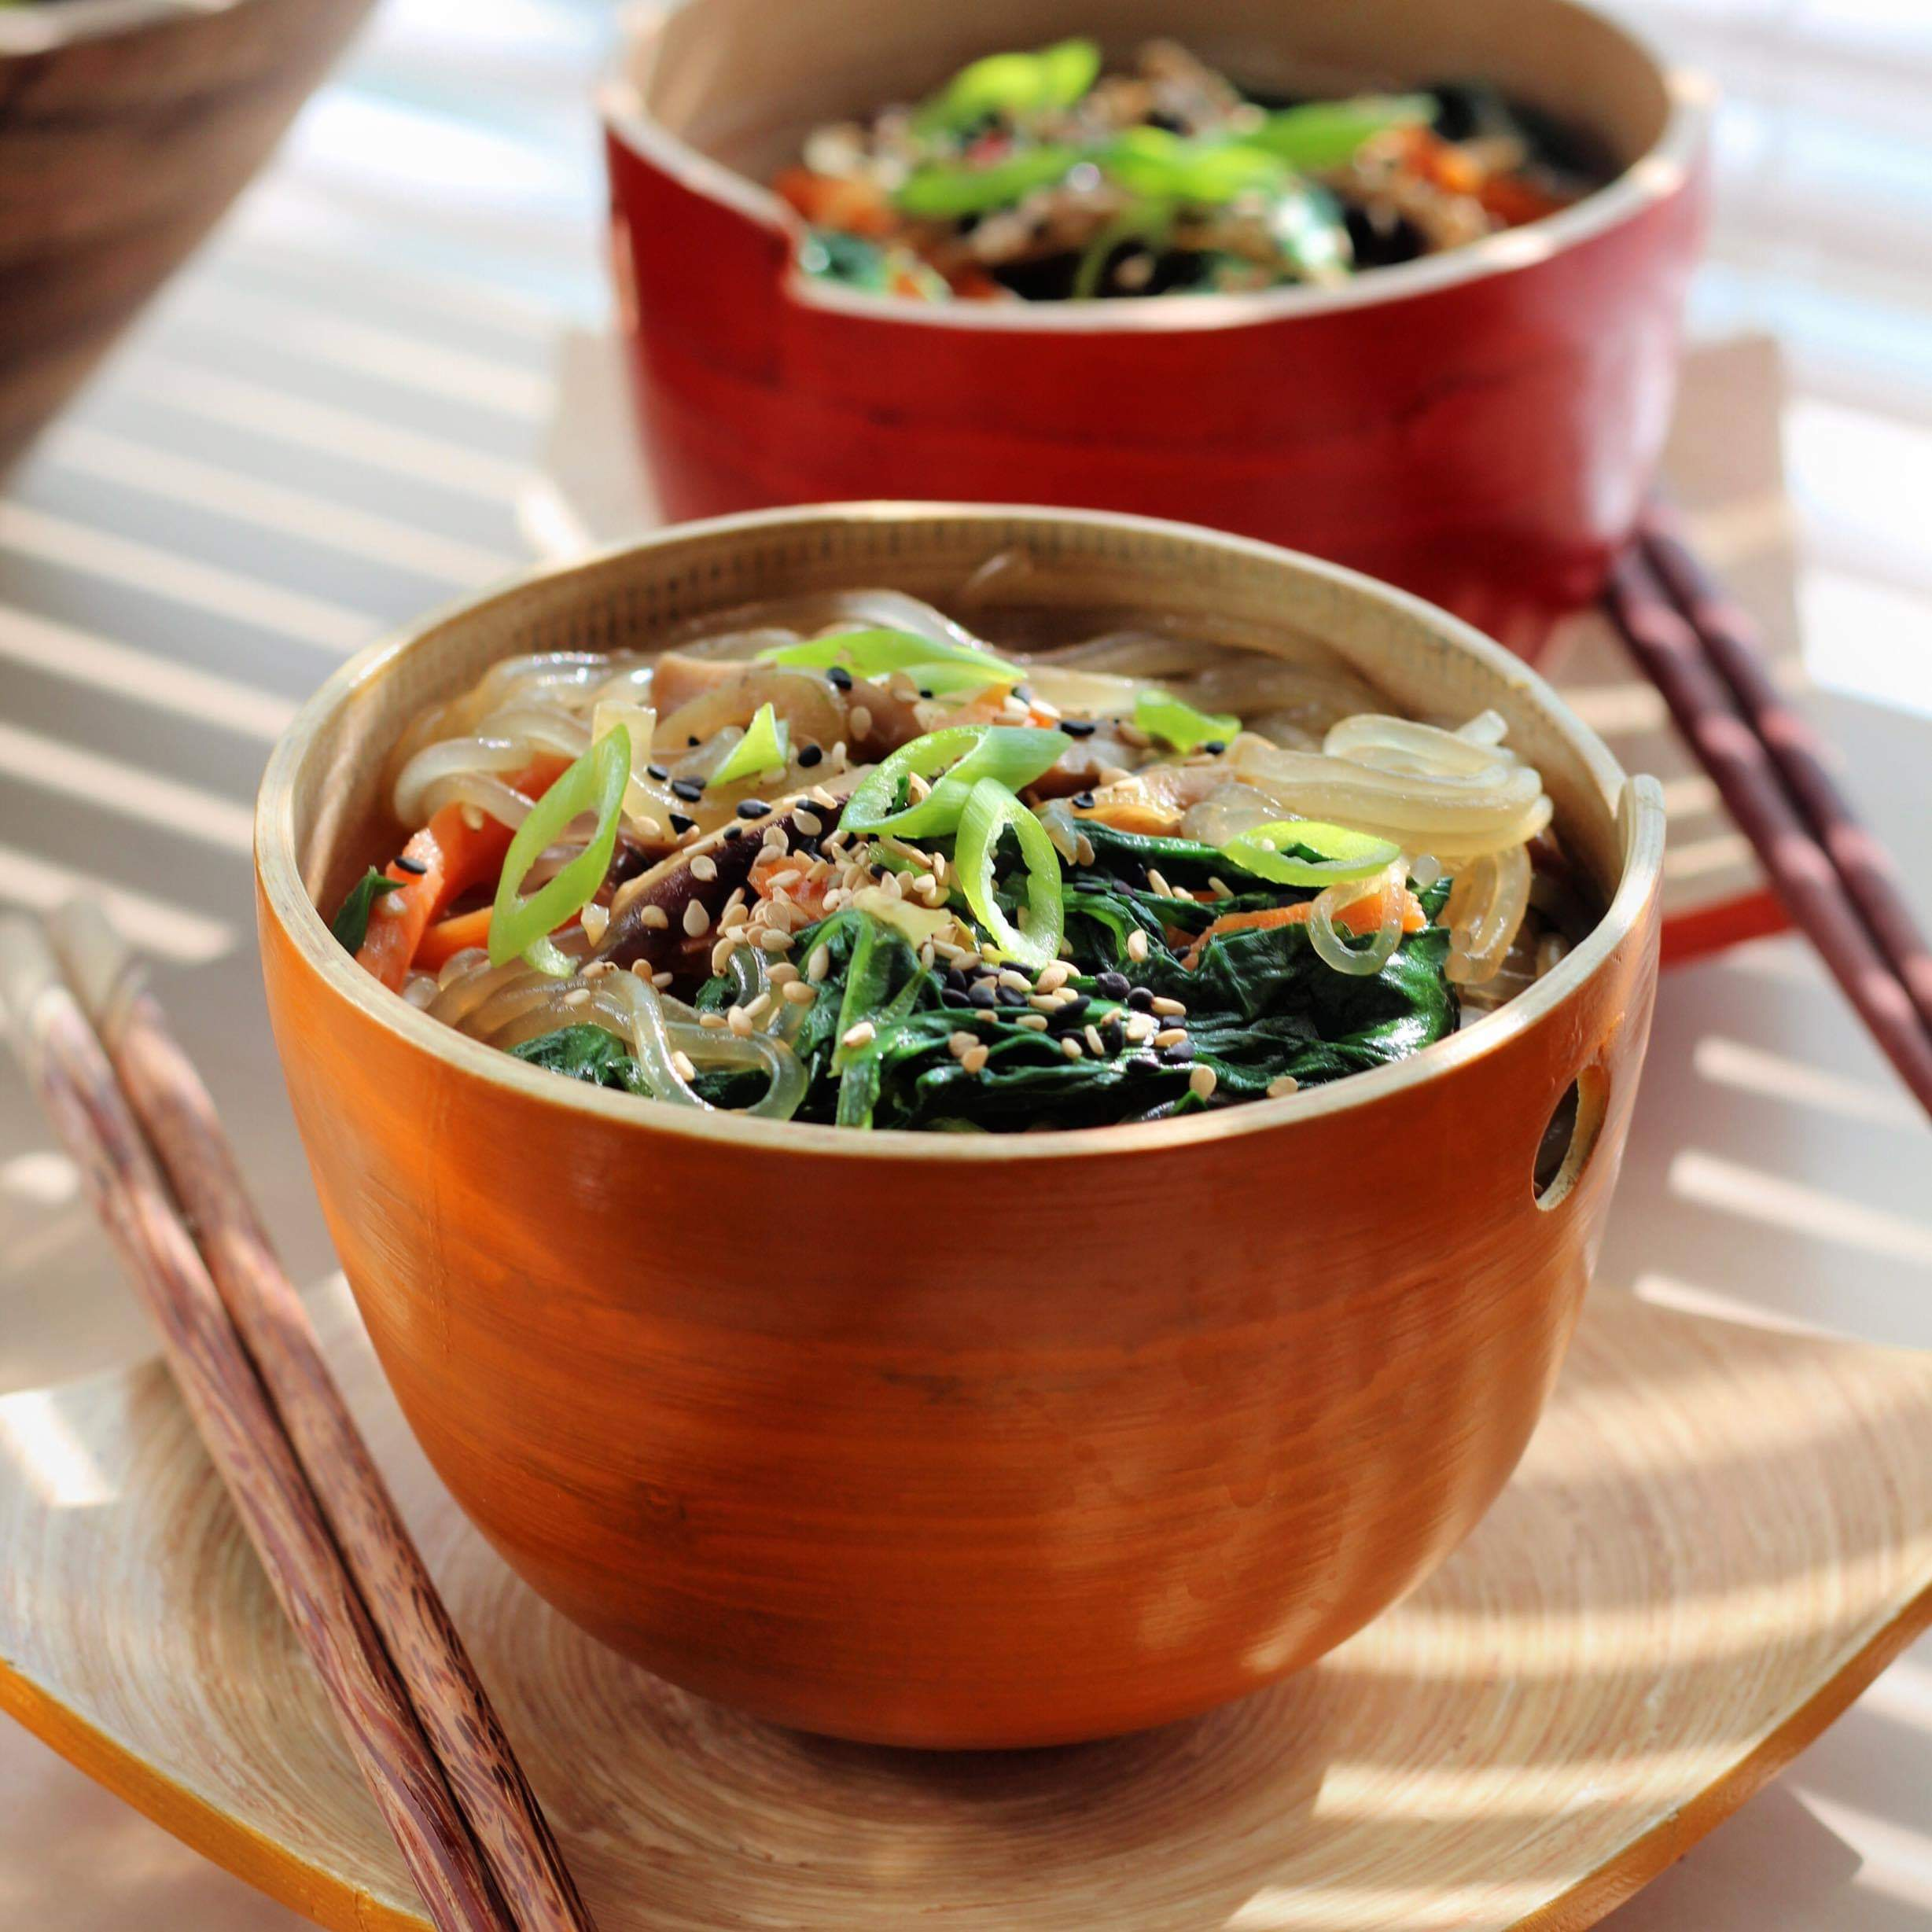 The Korean noodles used in this dish are made from sweet potato starch. They turn translucent when cooked, which is why we call them glass noodles. In this recipe, they are tossed with carrots, mushrooms, spinach and a sweet sesame-soy dressing for a gluten free and vegan meal.